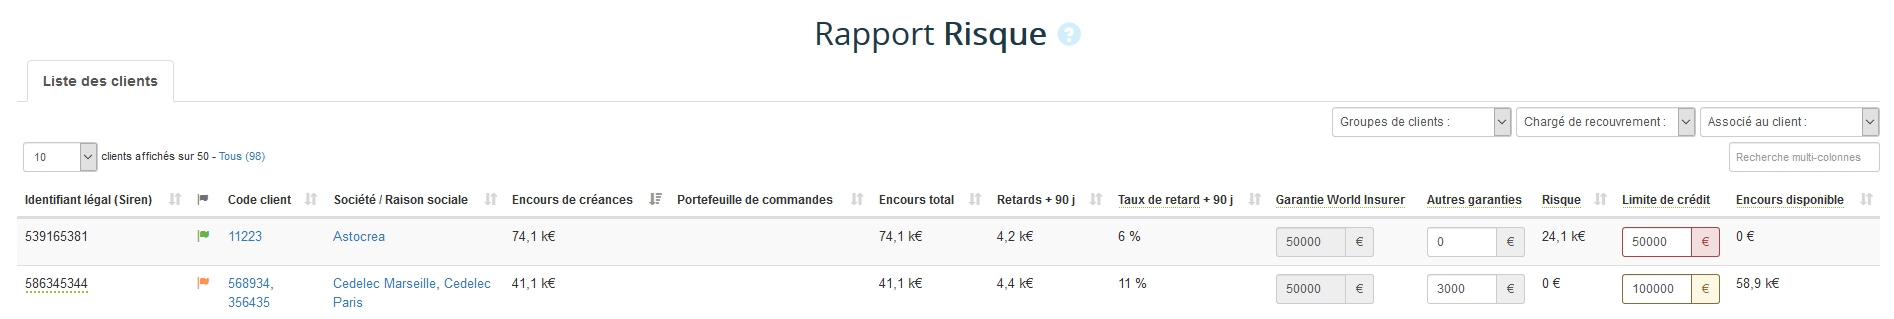 Rapport risque